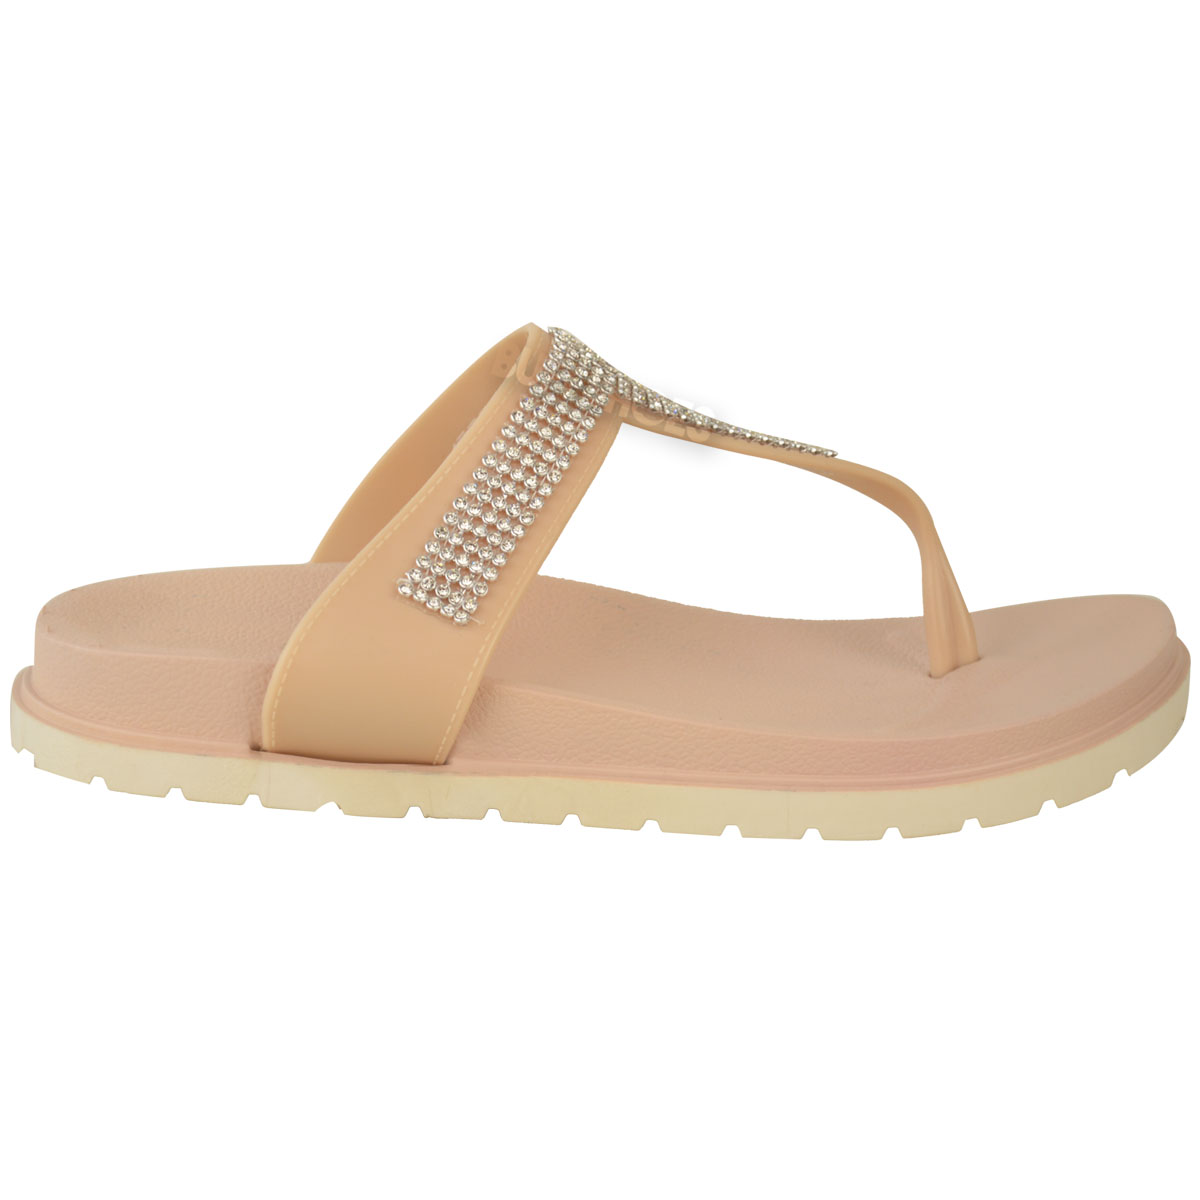 womens summer jelly sandals diamante wedge